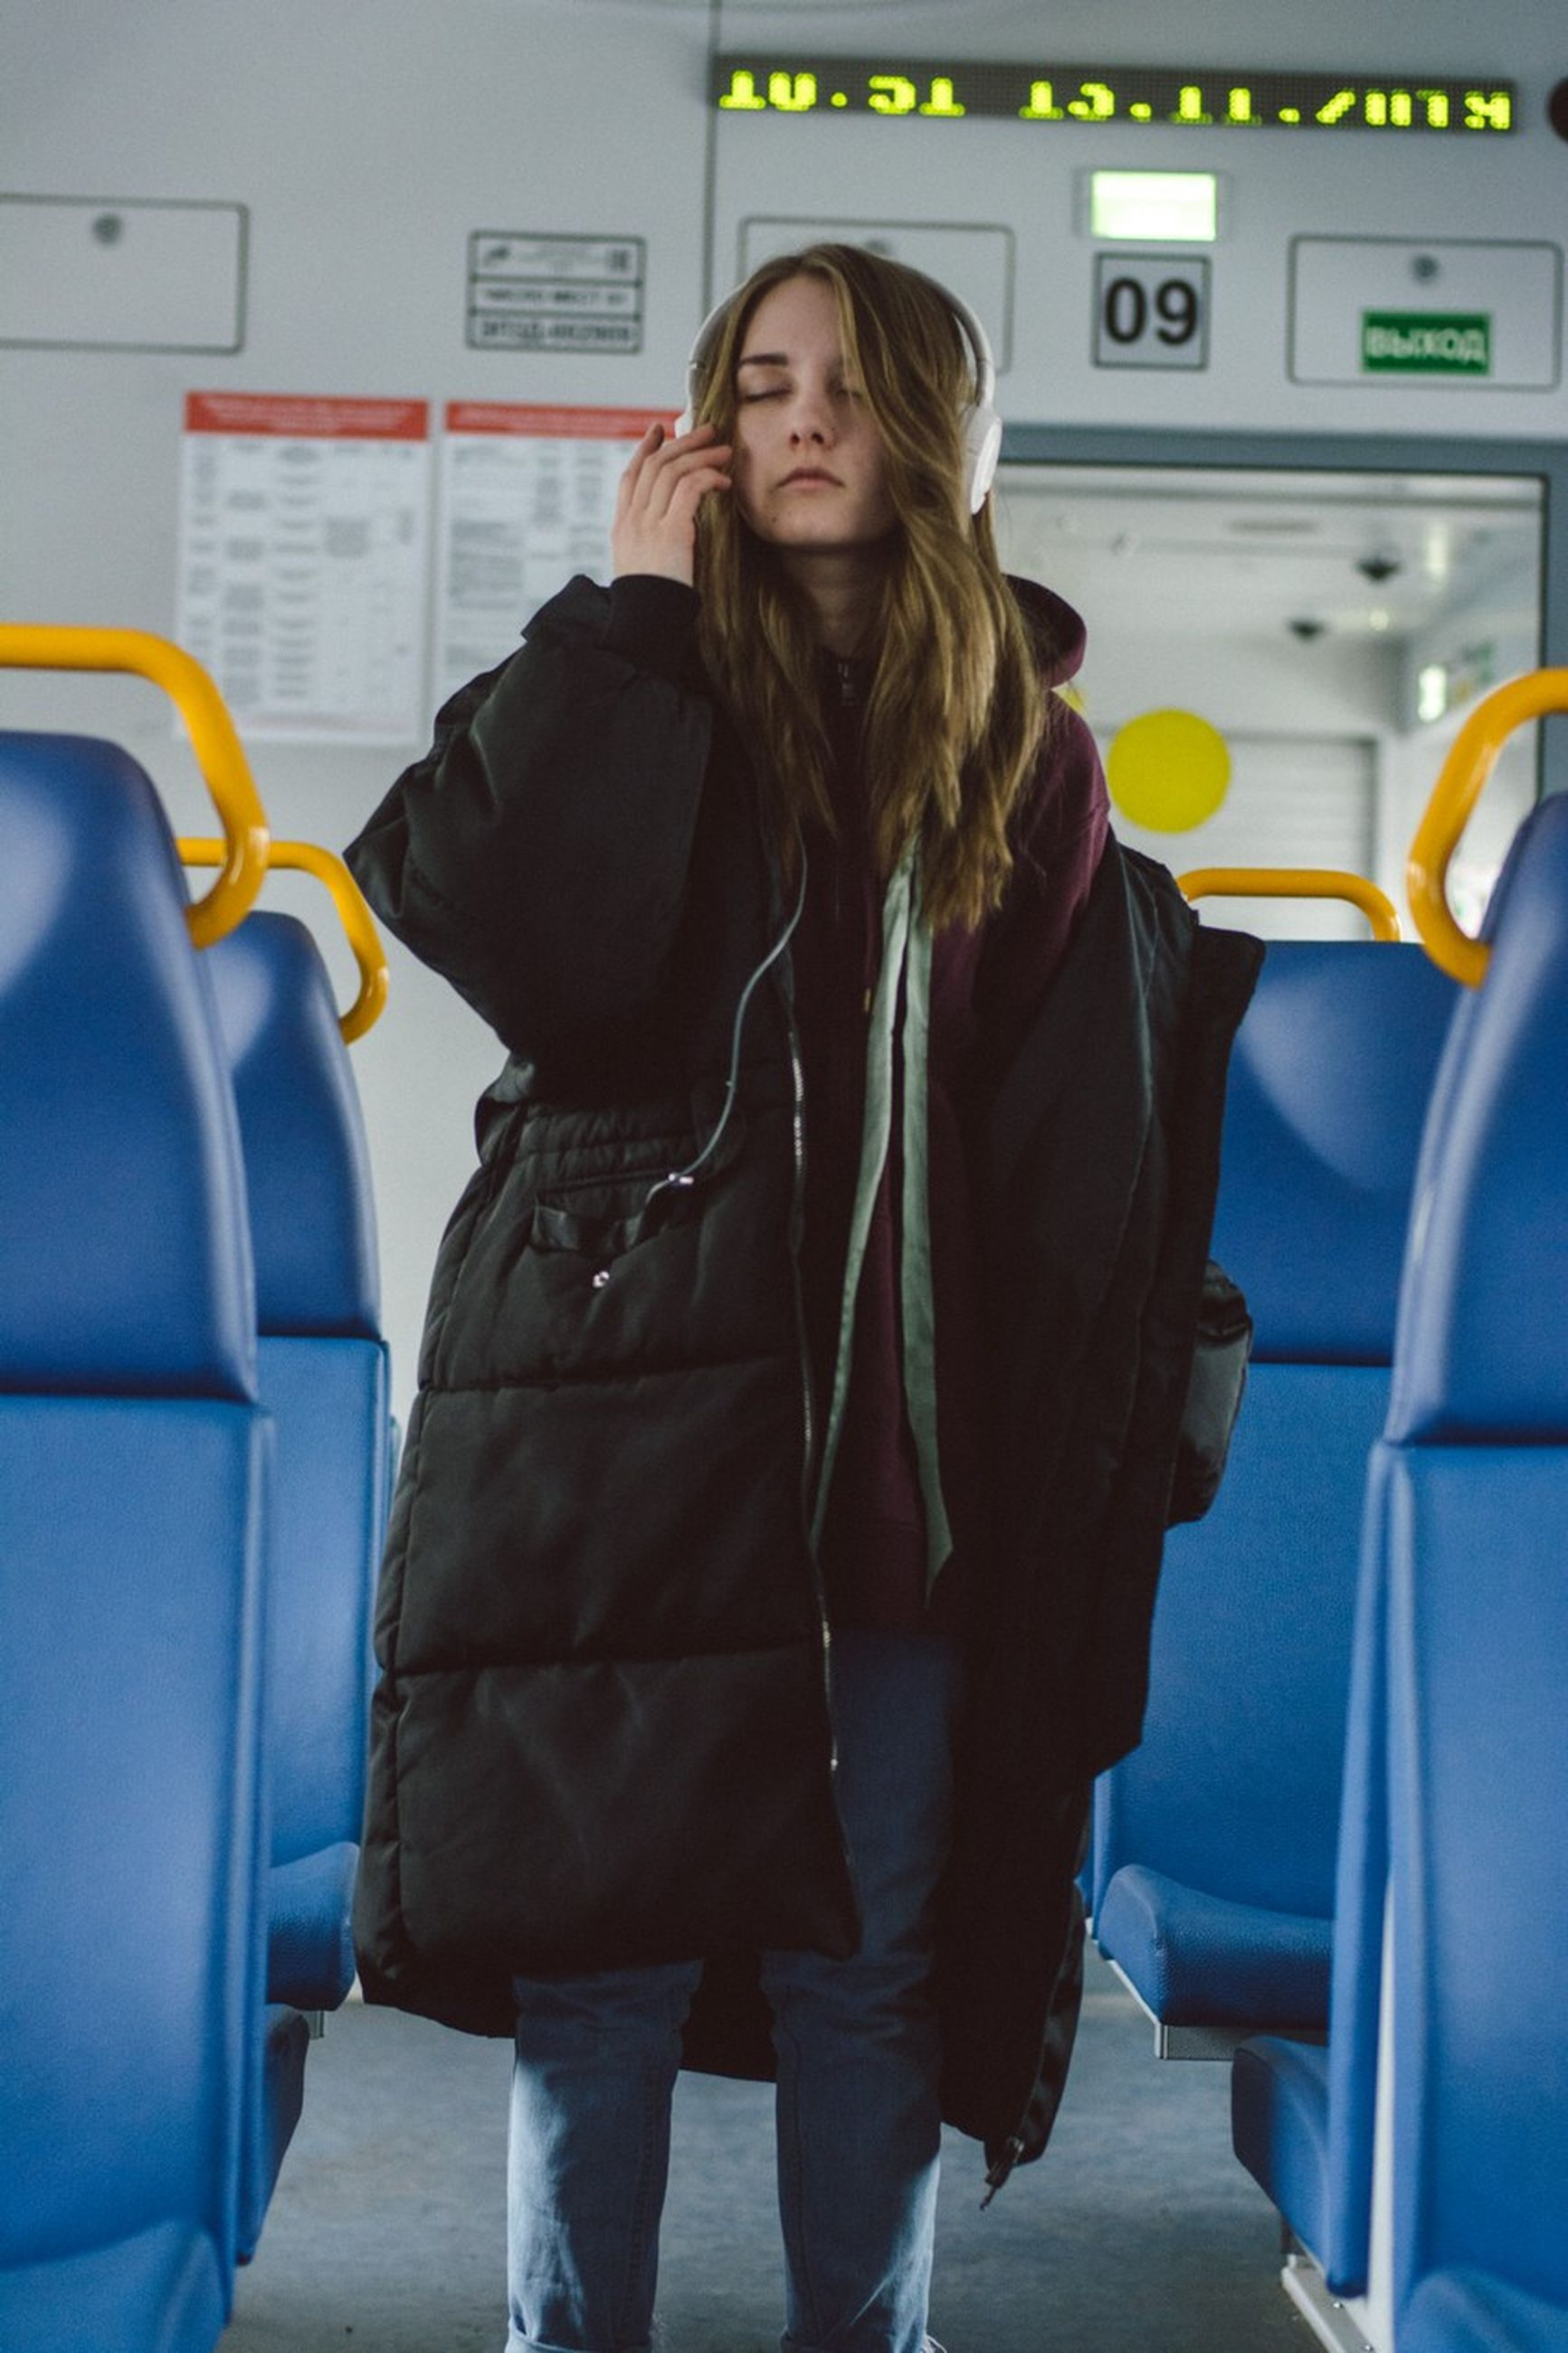 standing, one person, indoors, three quarter length, real people, lifestyles, public transportation, women, front view, transportation, technology, leisure activity, smiling, mode of transportation, young adult, clothing, casual clothing, travel, hairstyle